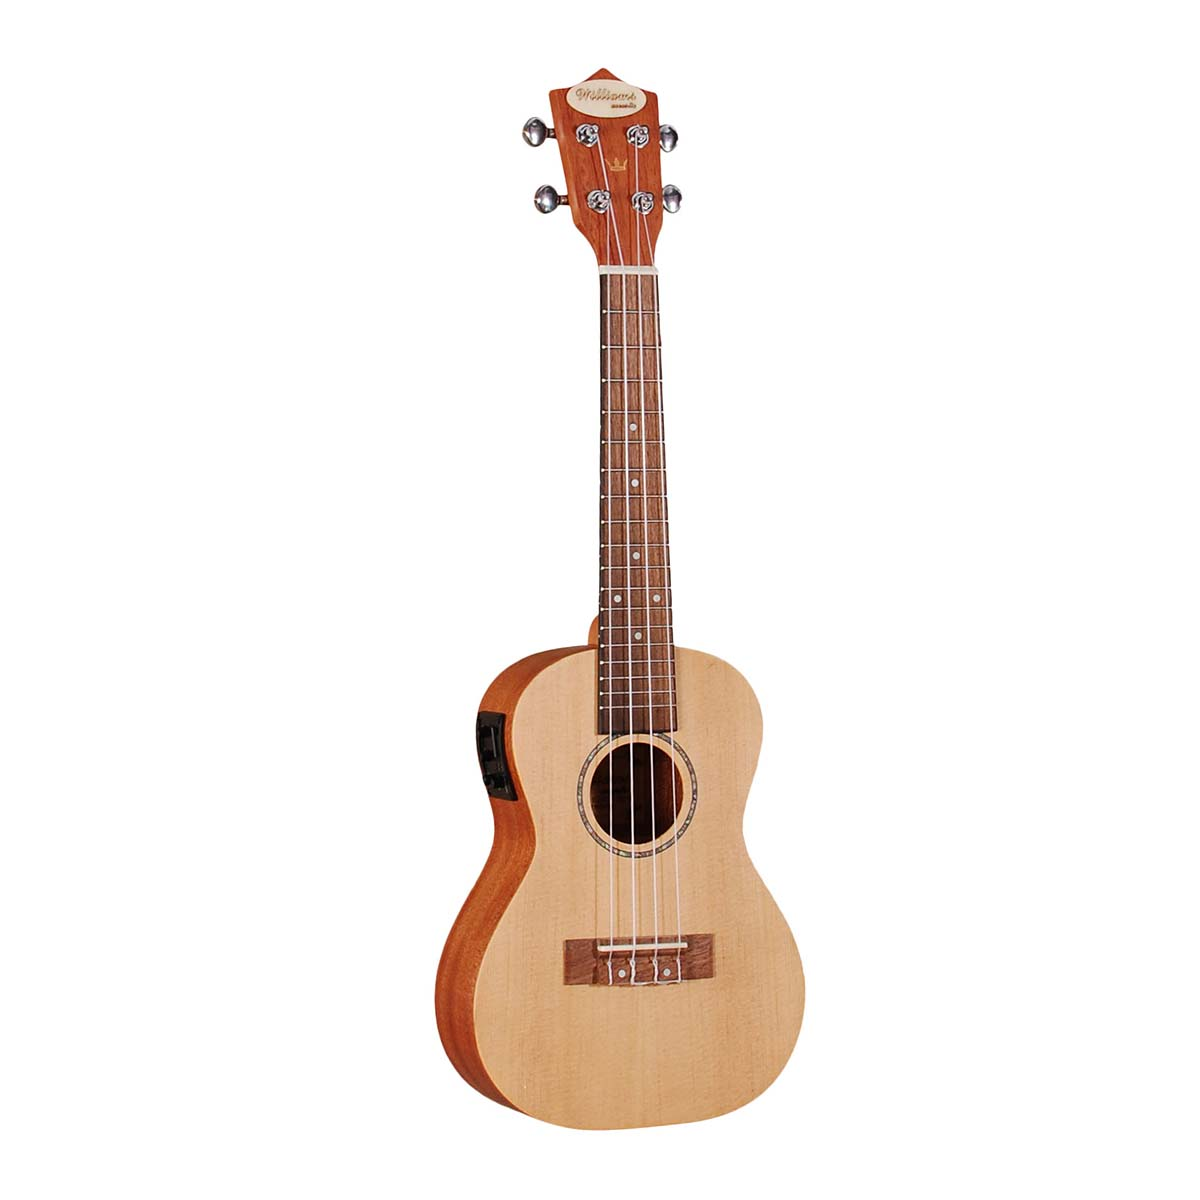 Williams Acoustic EU200C-EQ v2 concert ukulele